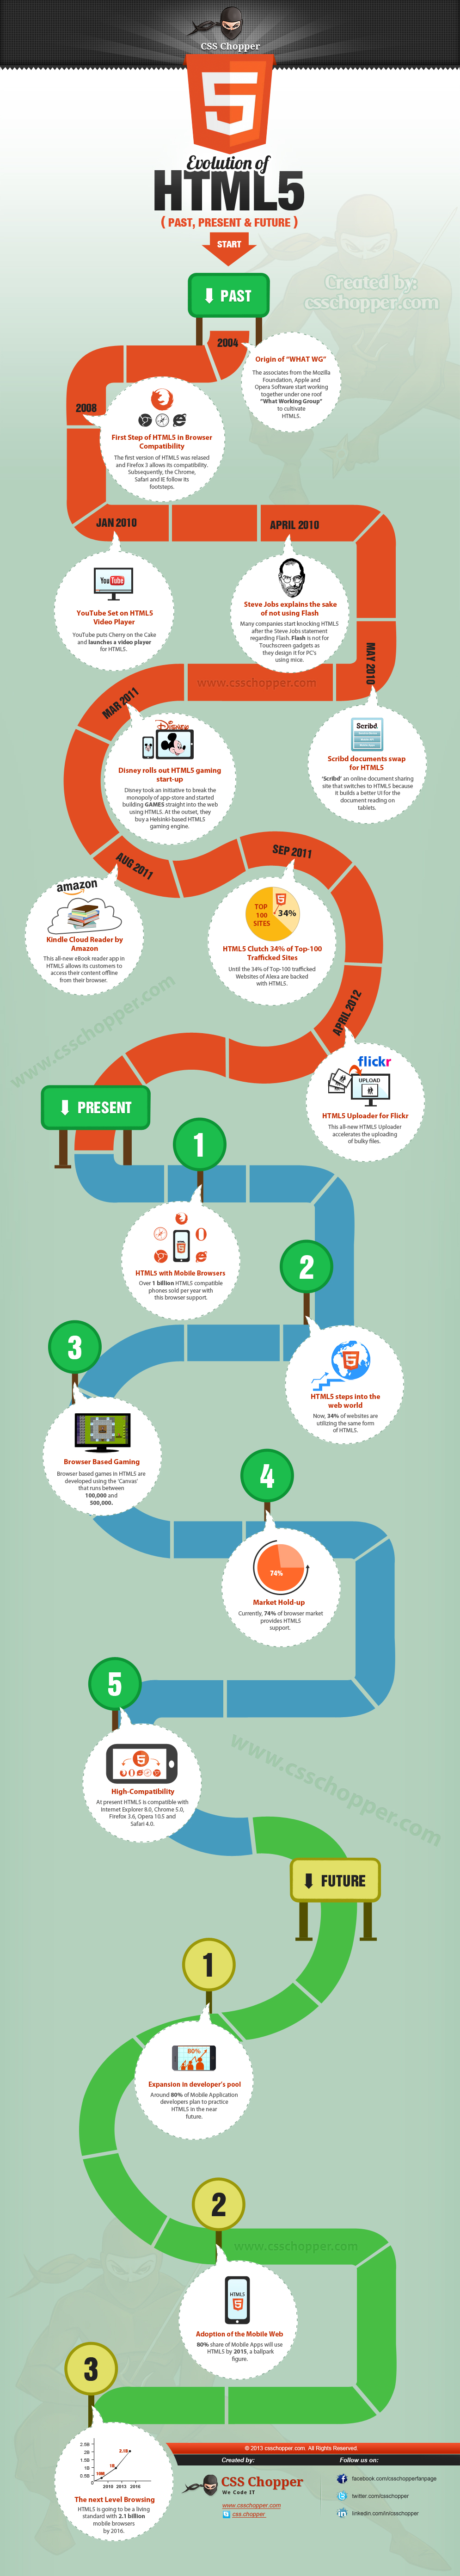 Infographic Evolution of HTML5 - Past, Present and Future